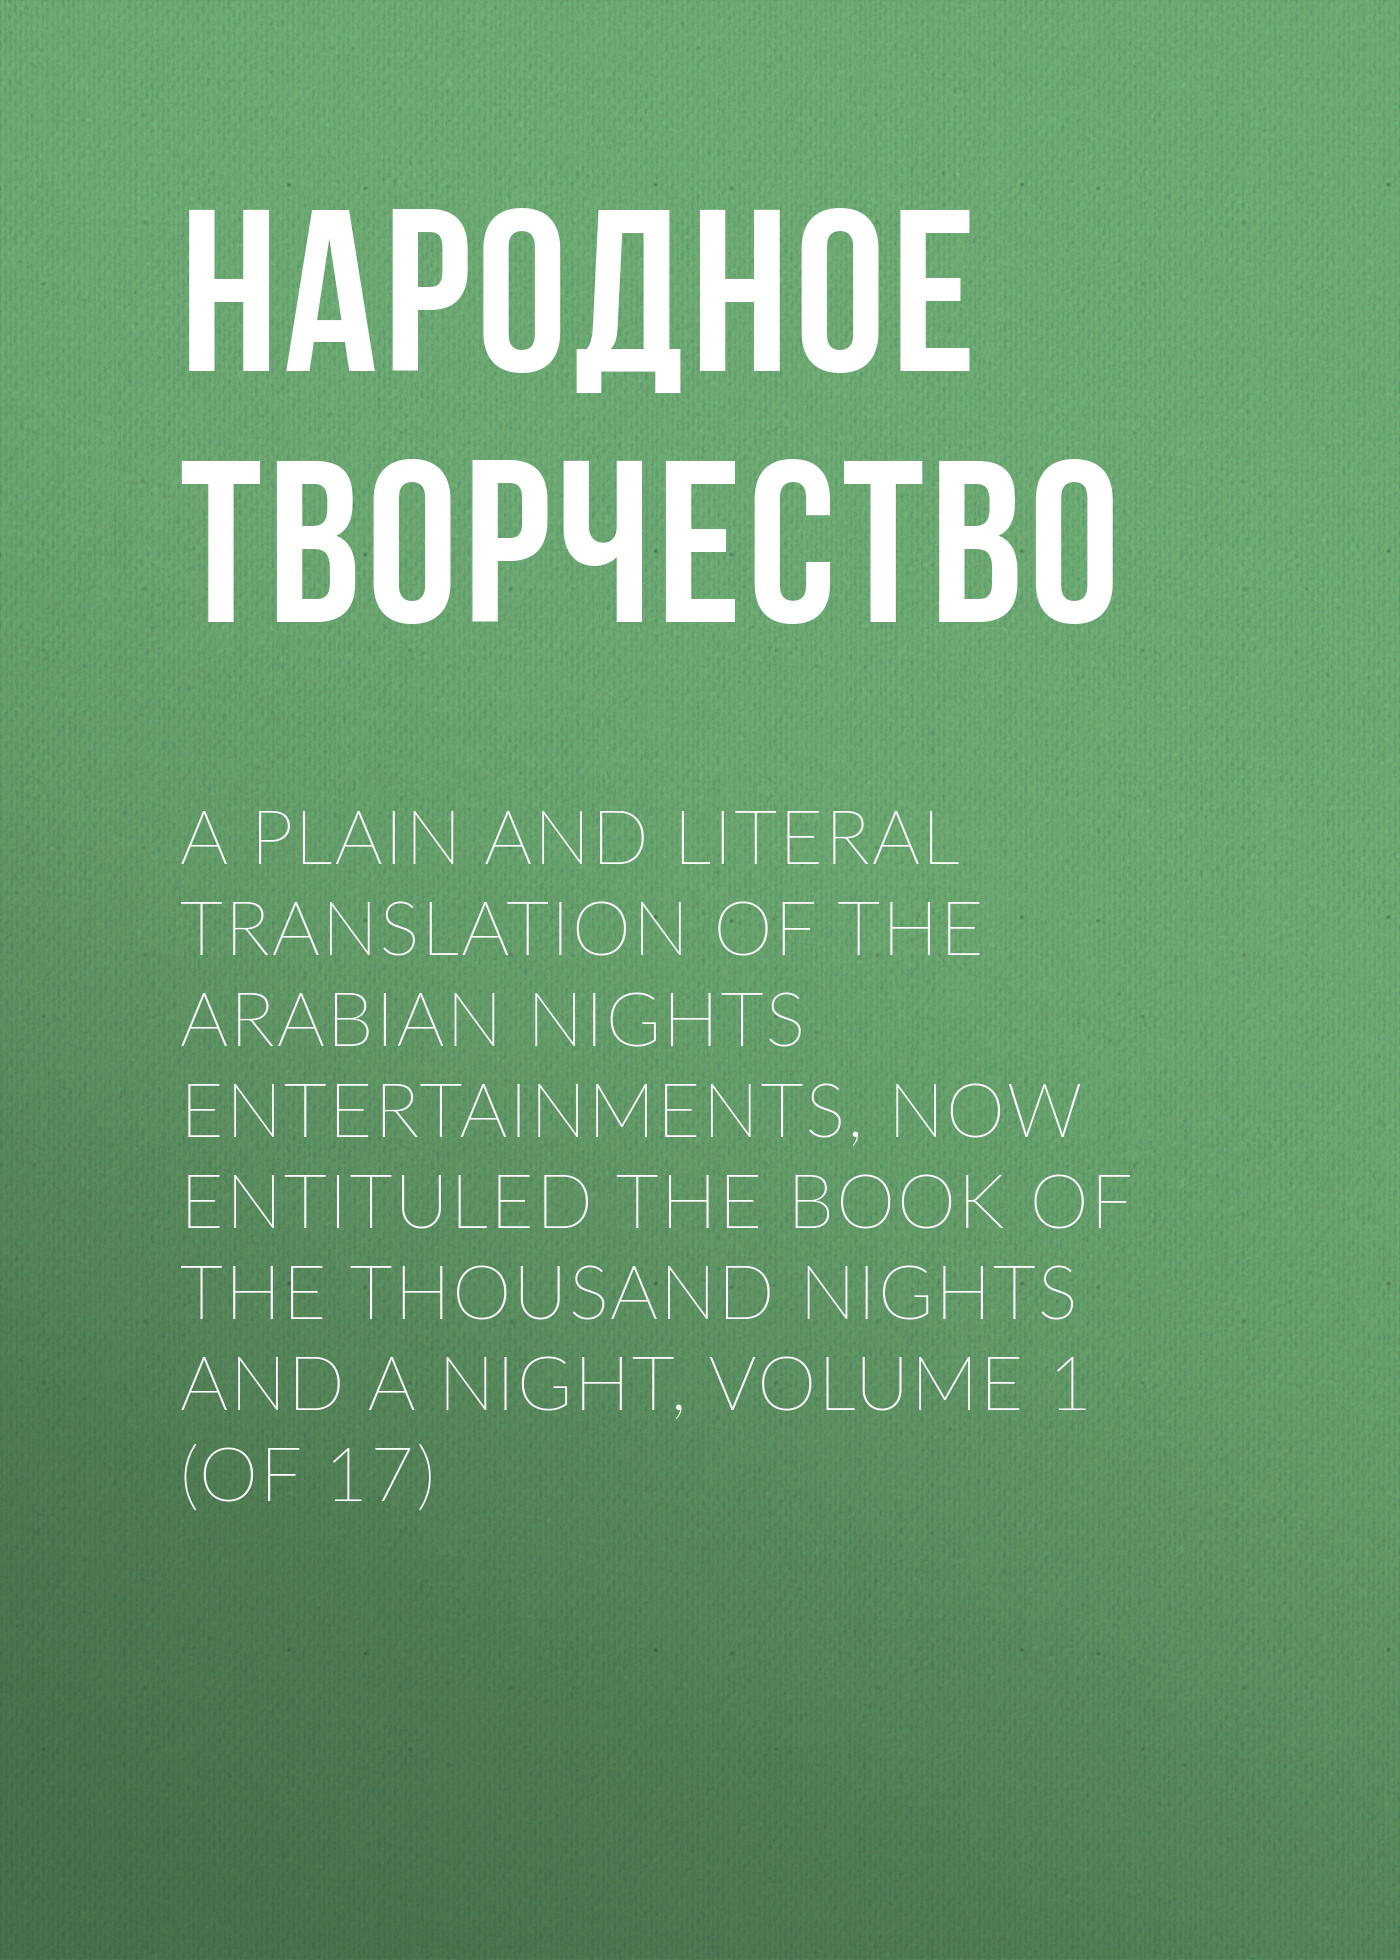 Народное творчество A plain and literal translation of the Arabian nights entertainments, now entituled The Book of the Thousand Nights and a Night, Volume 1 (of 17) rockwell a night of legendary collaborations